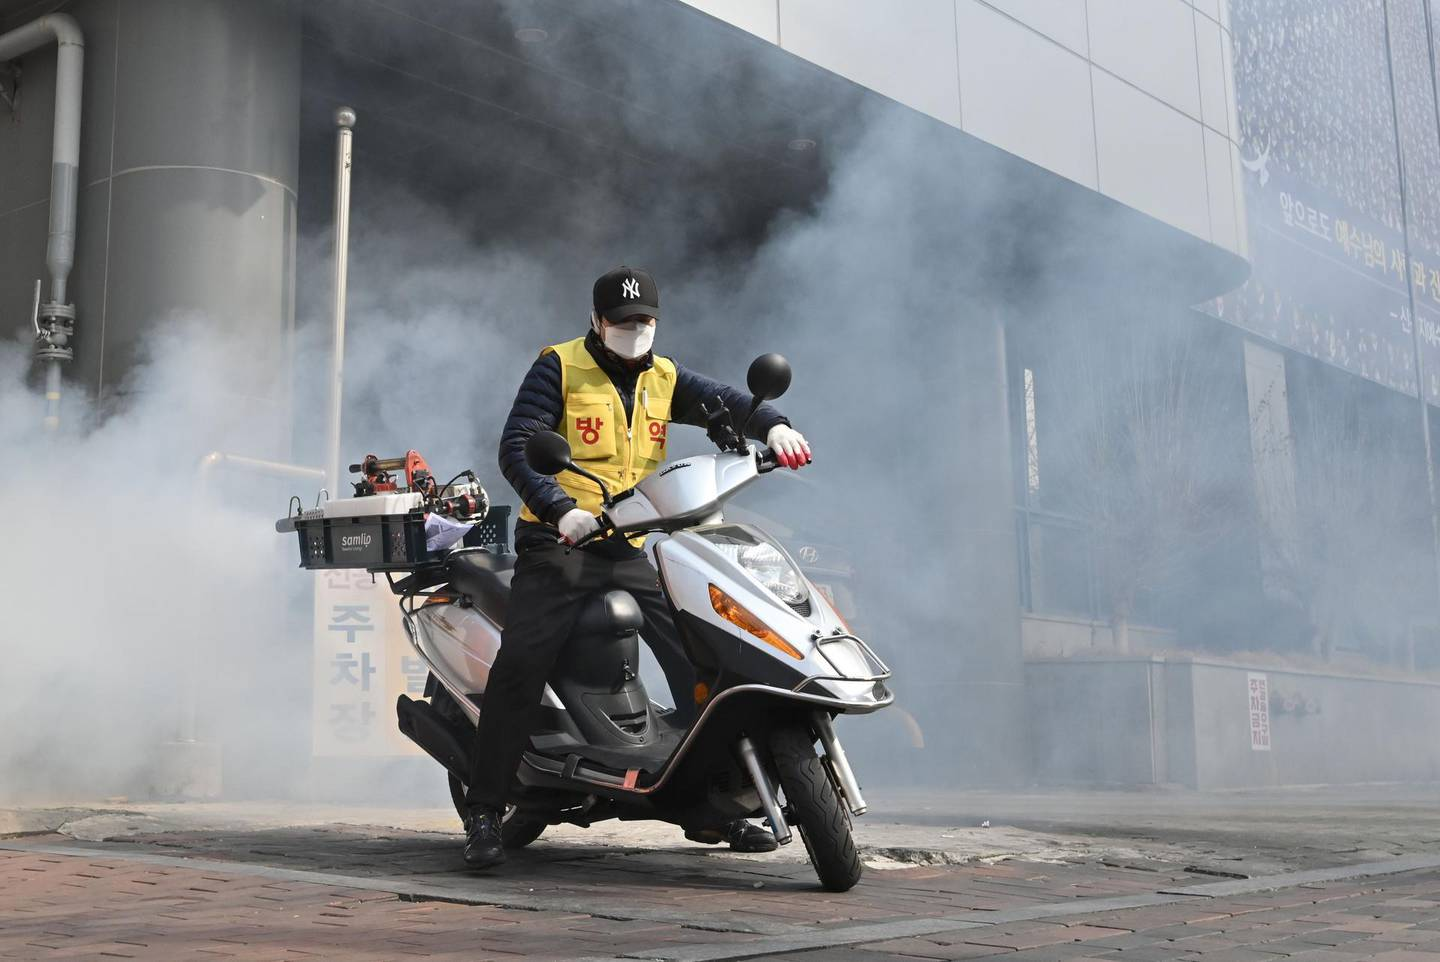 A South Korean health official sprays disinfectant in front of the Daegu branch of the Shincheonji Church of Jesus in the southeastern city of Daegu on February 21, 2020 as more than 80 members of Shincheonji have now been infected with the COVID-19 coronavirus. South Korea confirmed 52 more cases of novel coronavirus on February 21 as the number of infections linked to a religious sect in Daegu spiked, making it the worst-infected country outside China. / AFP / Jung Yeon-je